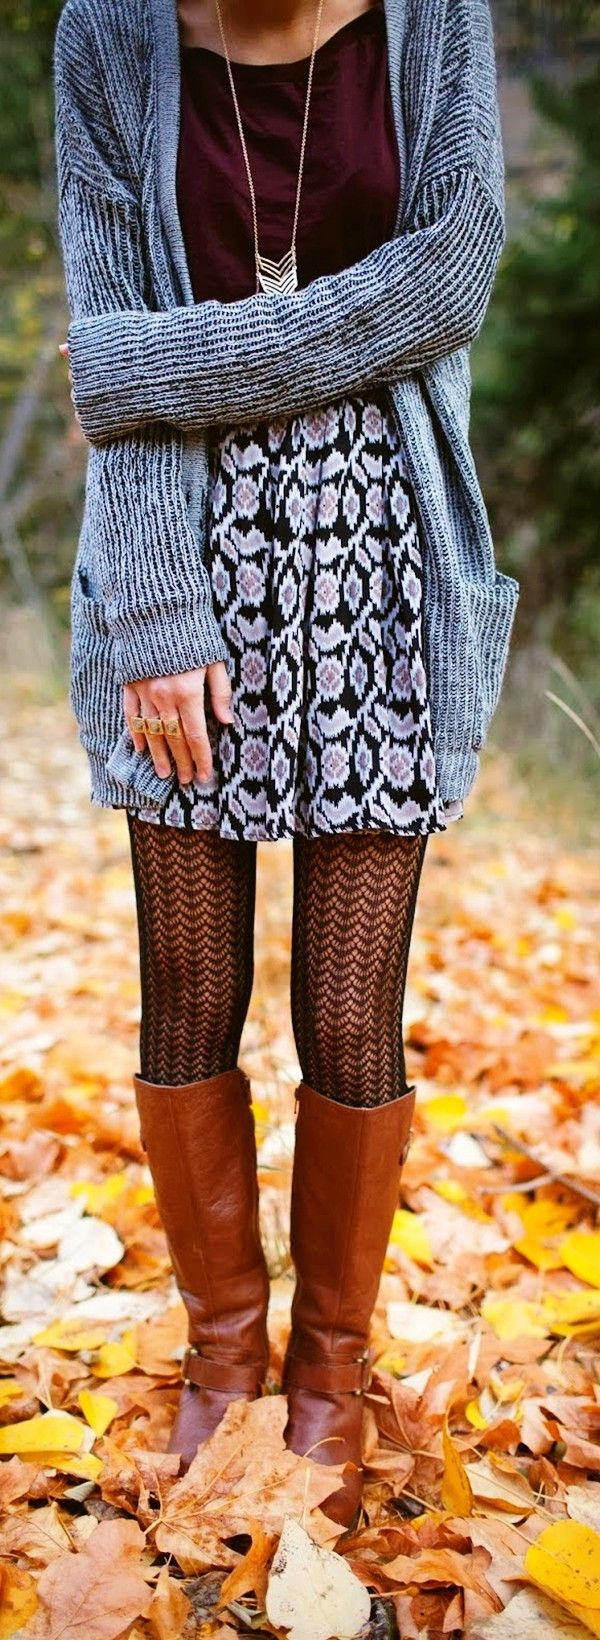 thankful herbst outfit braune stiefel outfits. Black Bedroom Furniture Sets. Home Design Ideas